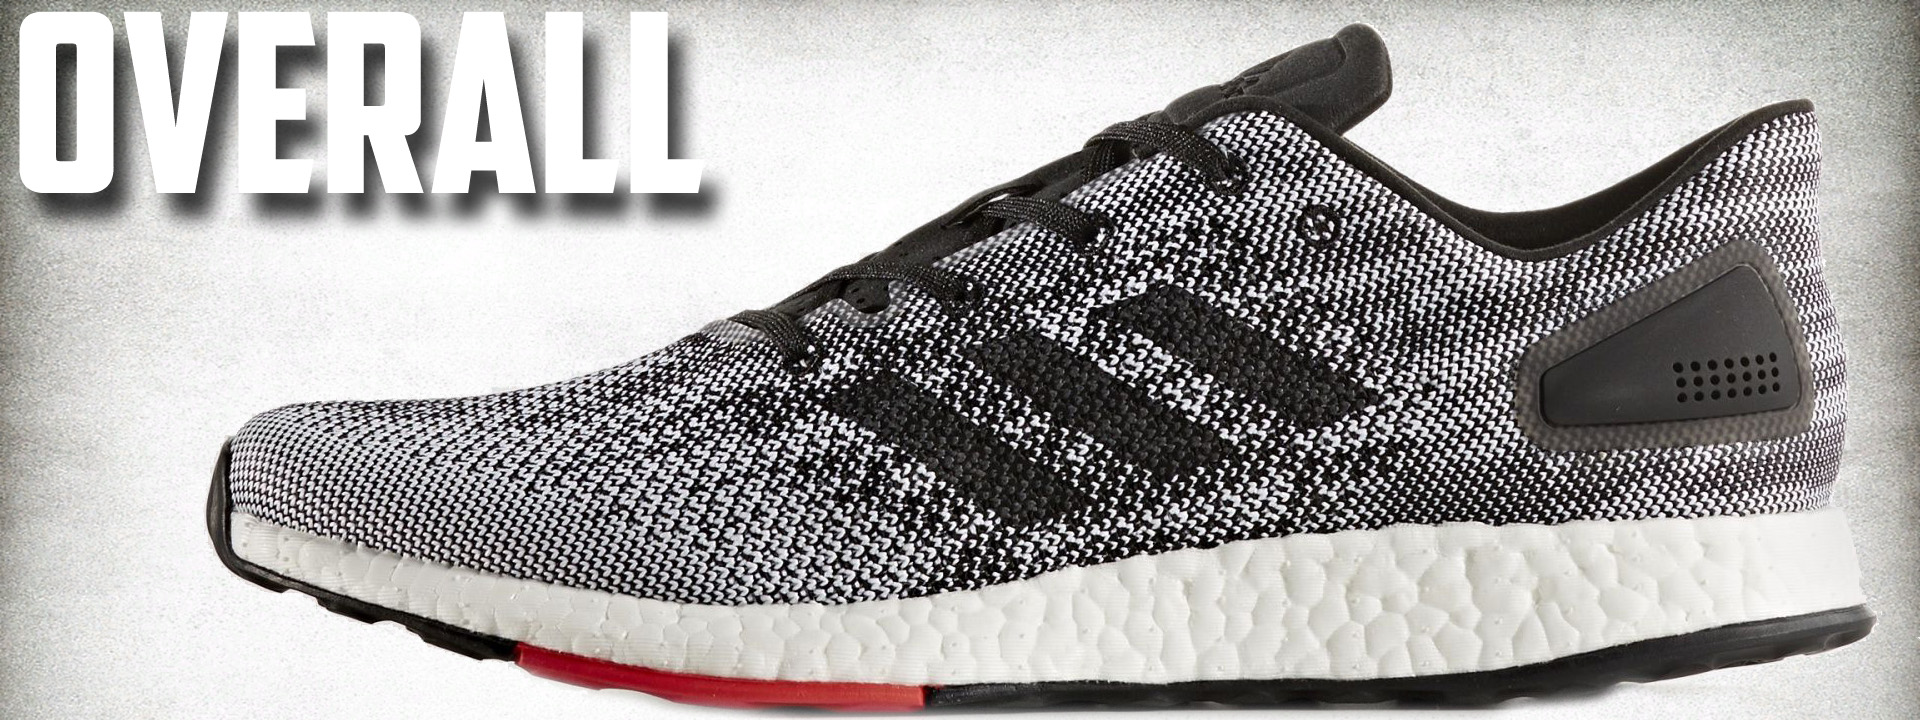 ADIDAS PURE BOOST DPR (RUNNING SHOE REVIEW): Expect the